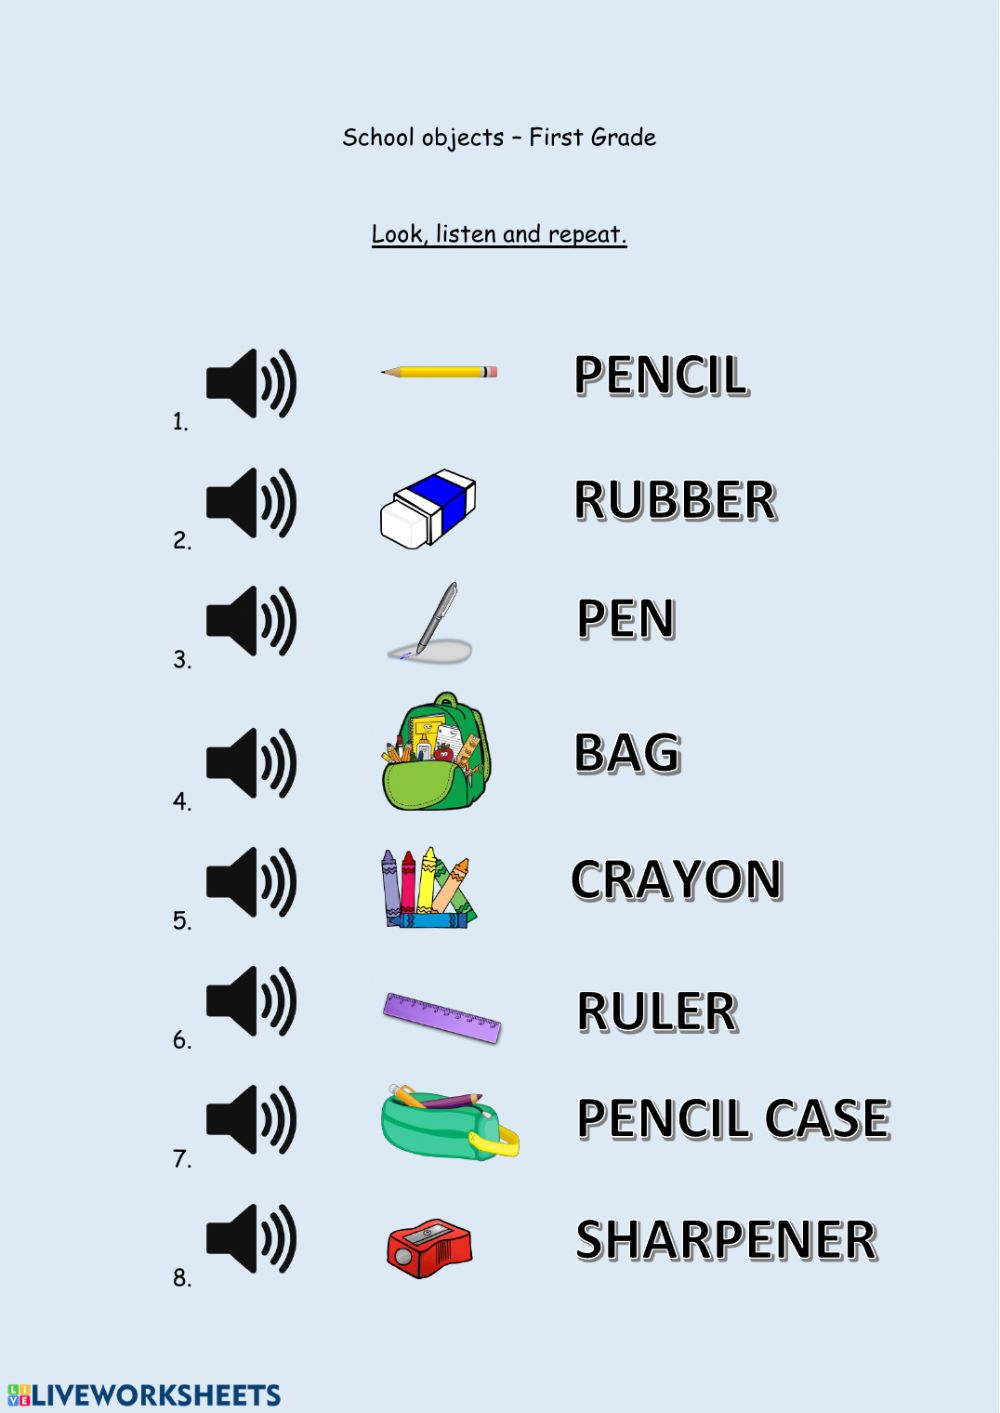 hight resolution of School objects - First Grade worksheet